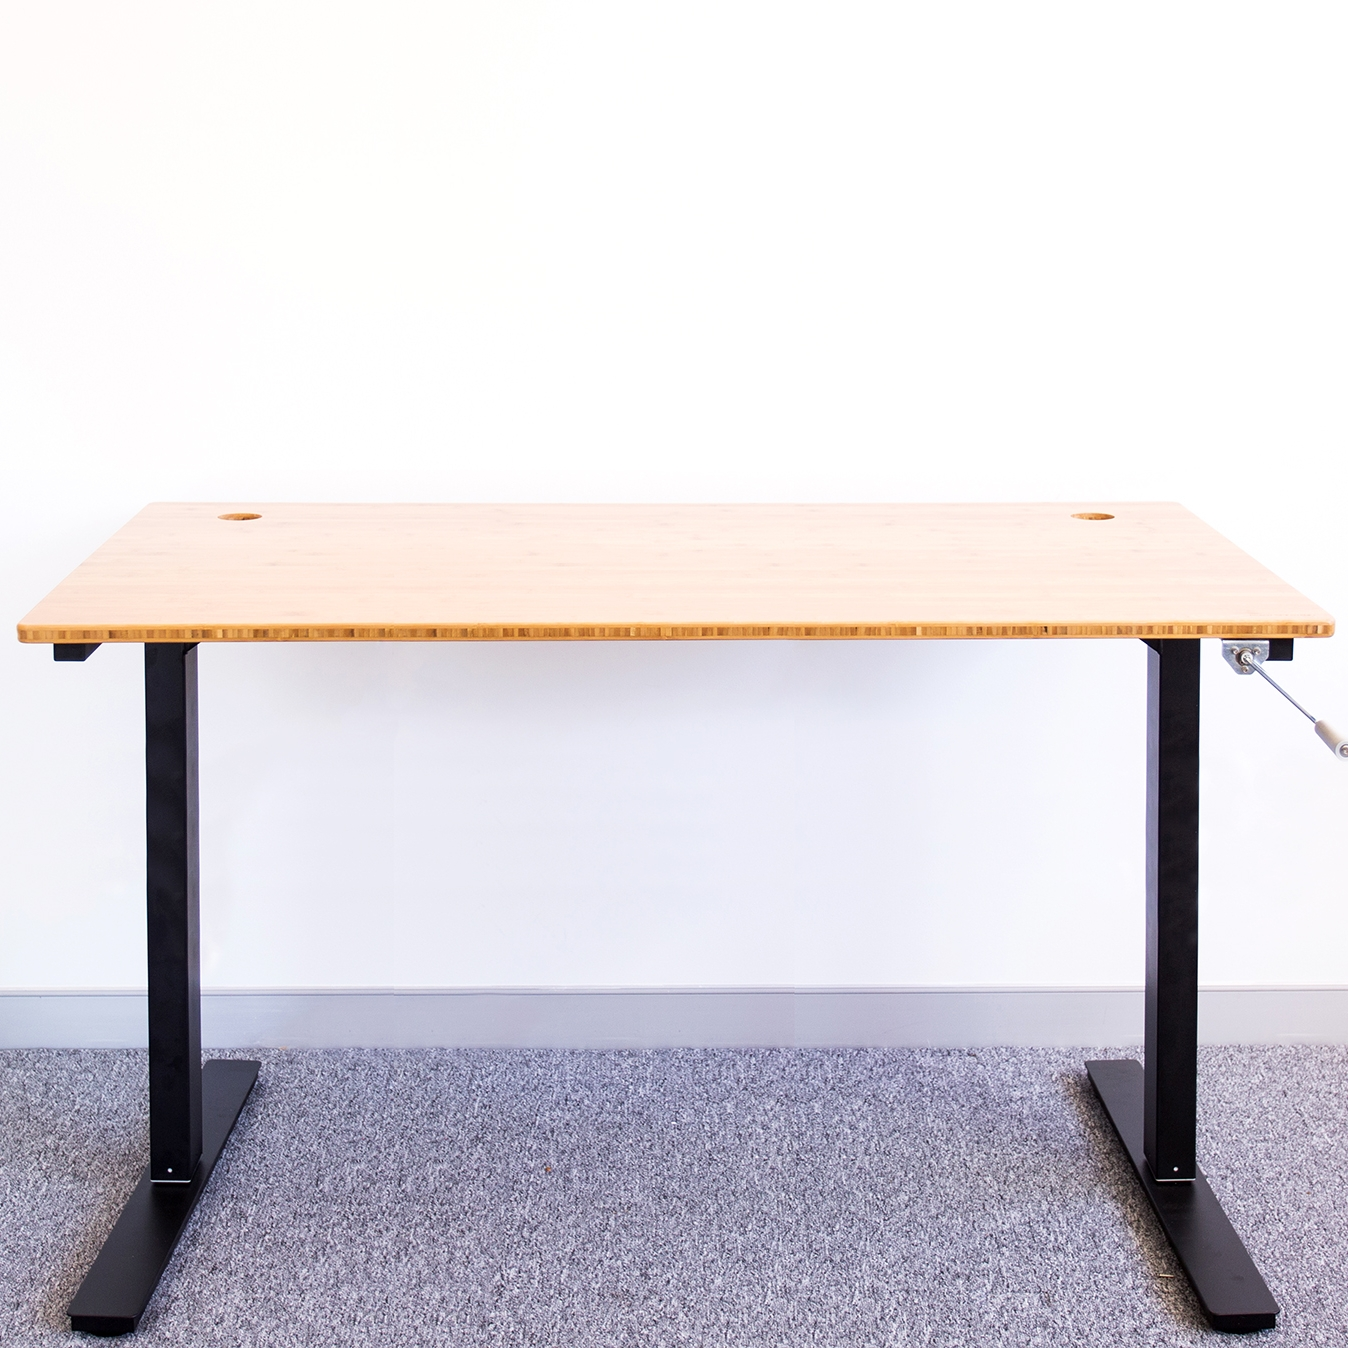 ready-set-stand-bamboo-manual-standing-desk-01